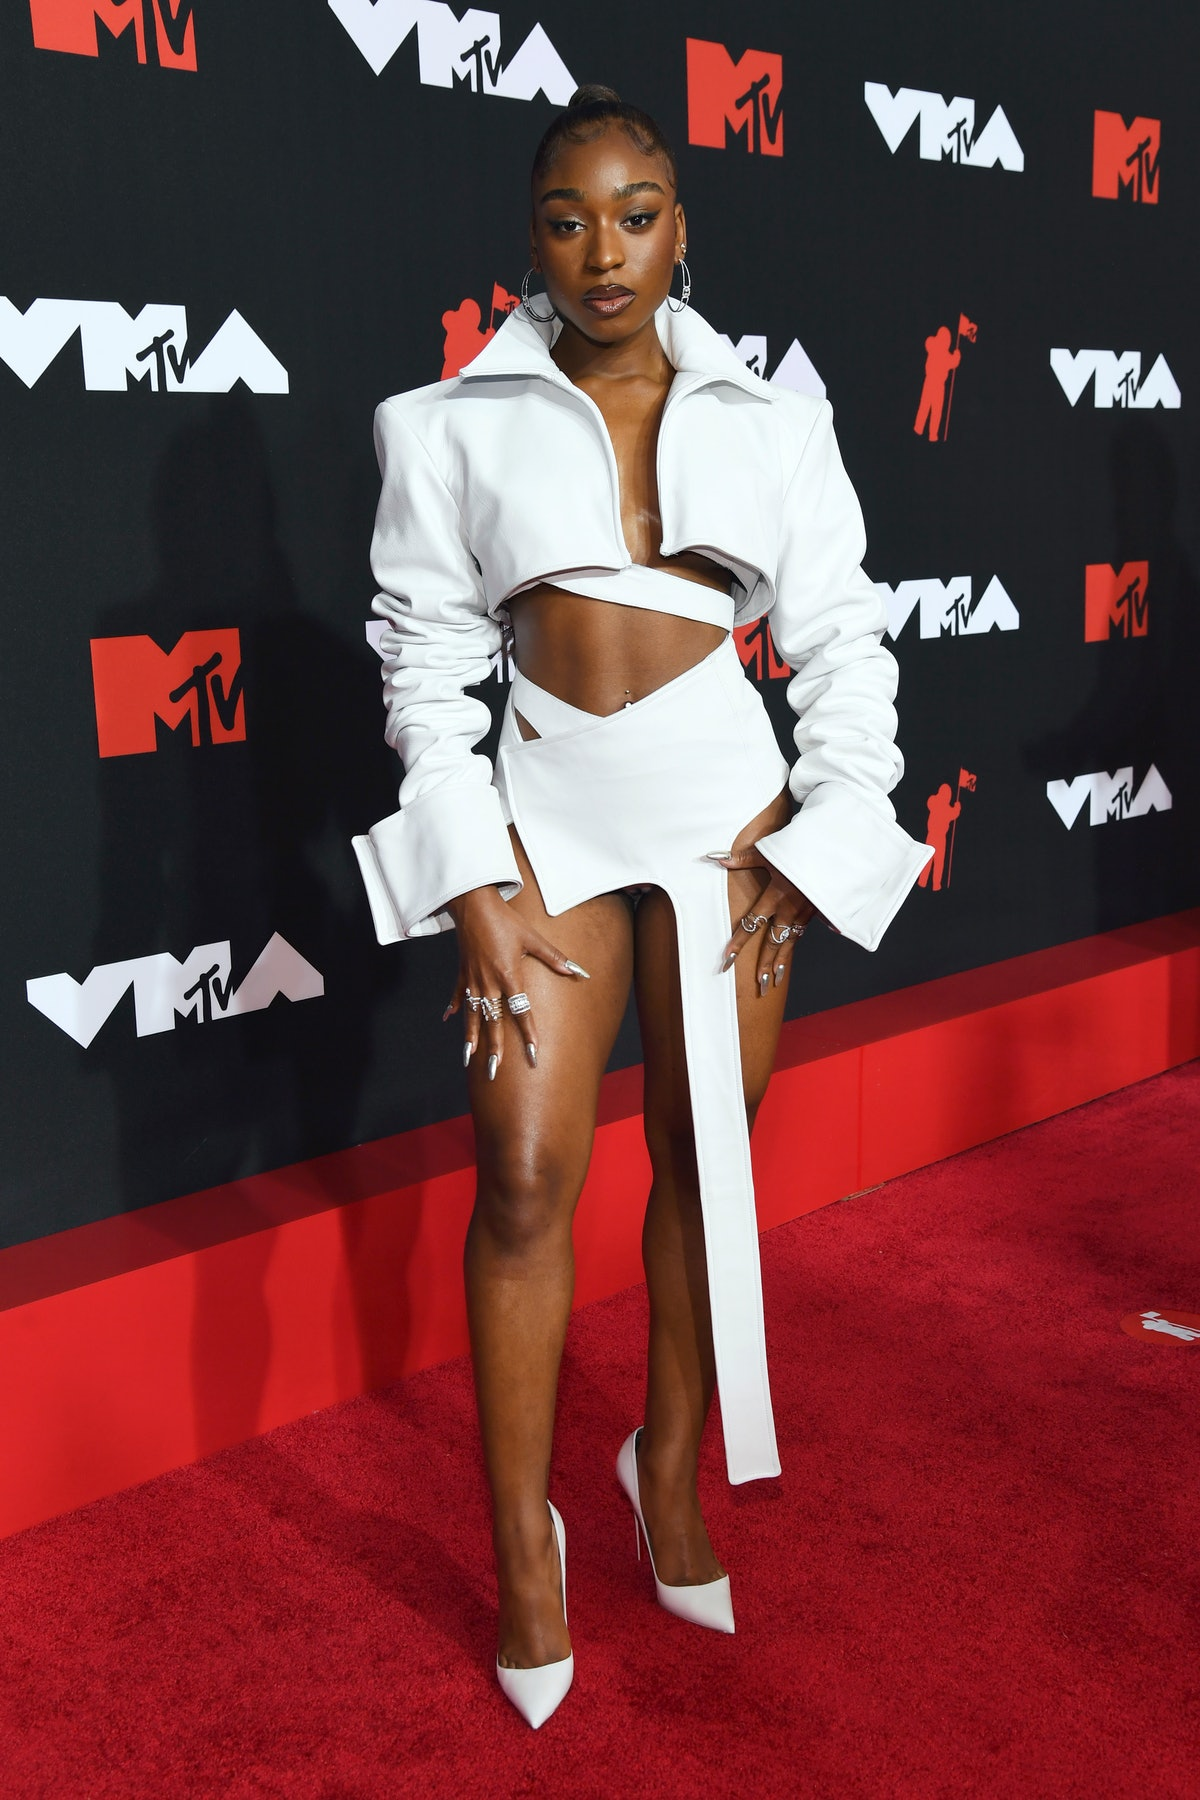 NEW YORK, NEW YORK - SEPTEMBER 12: Normani attends the 2021 MTV Video Music Awards at Barclays Cente...